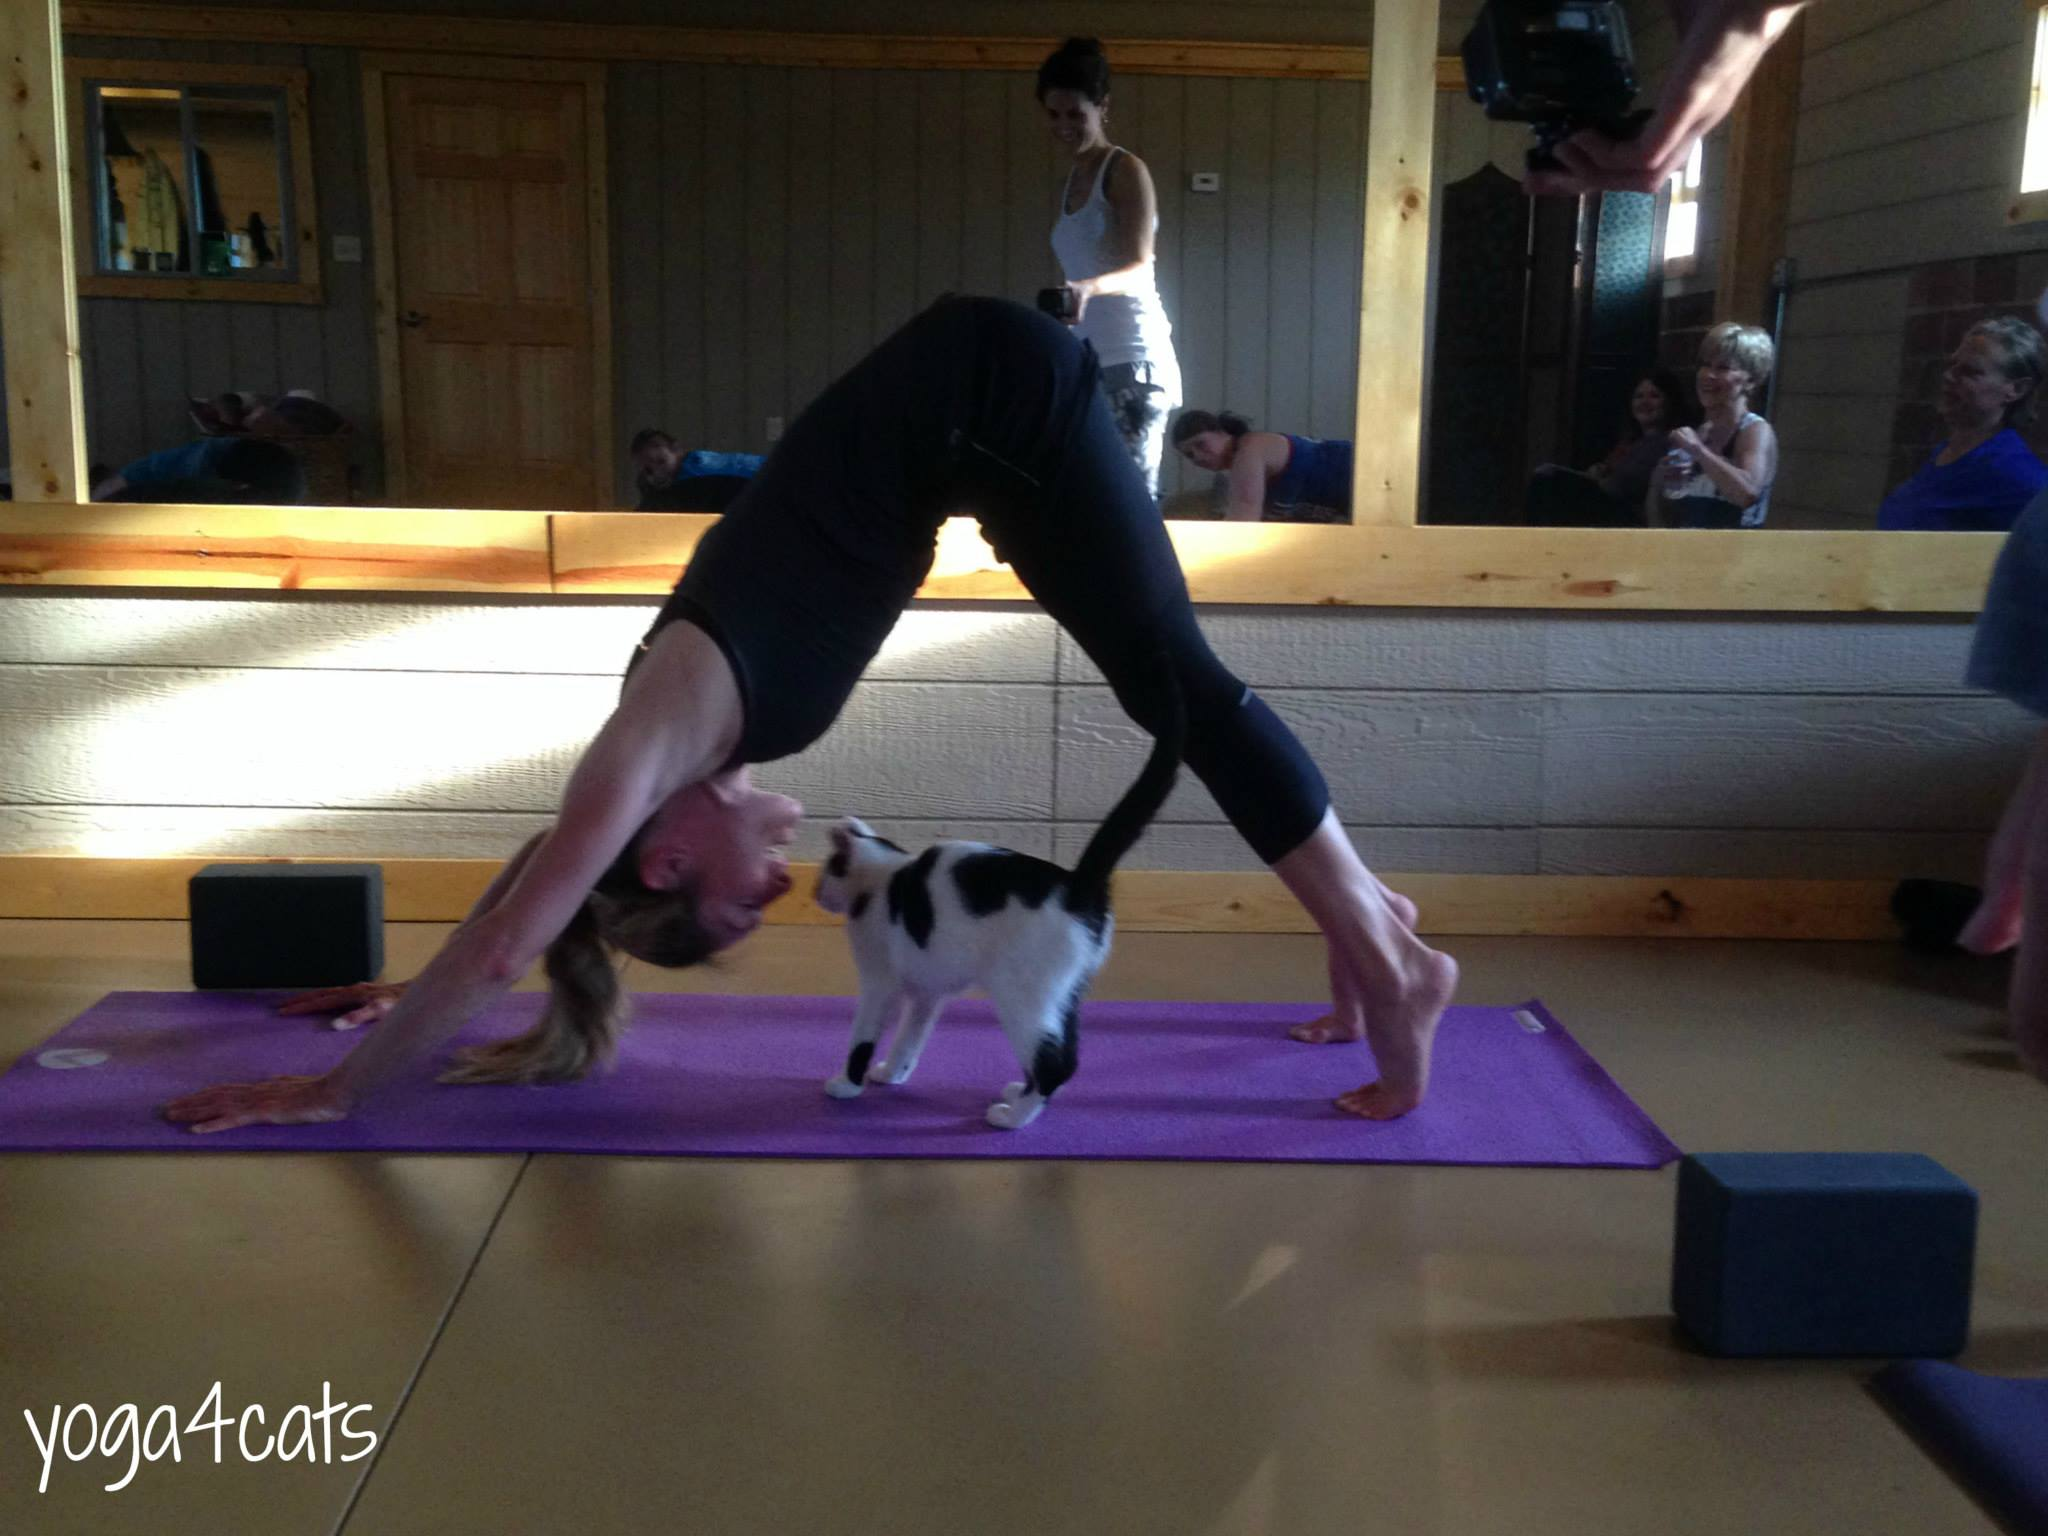 About Yoga4Cats